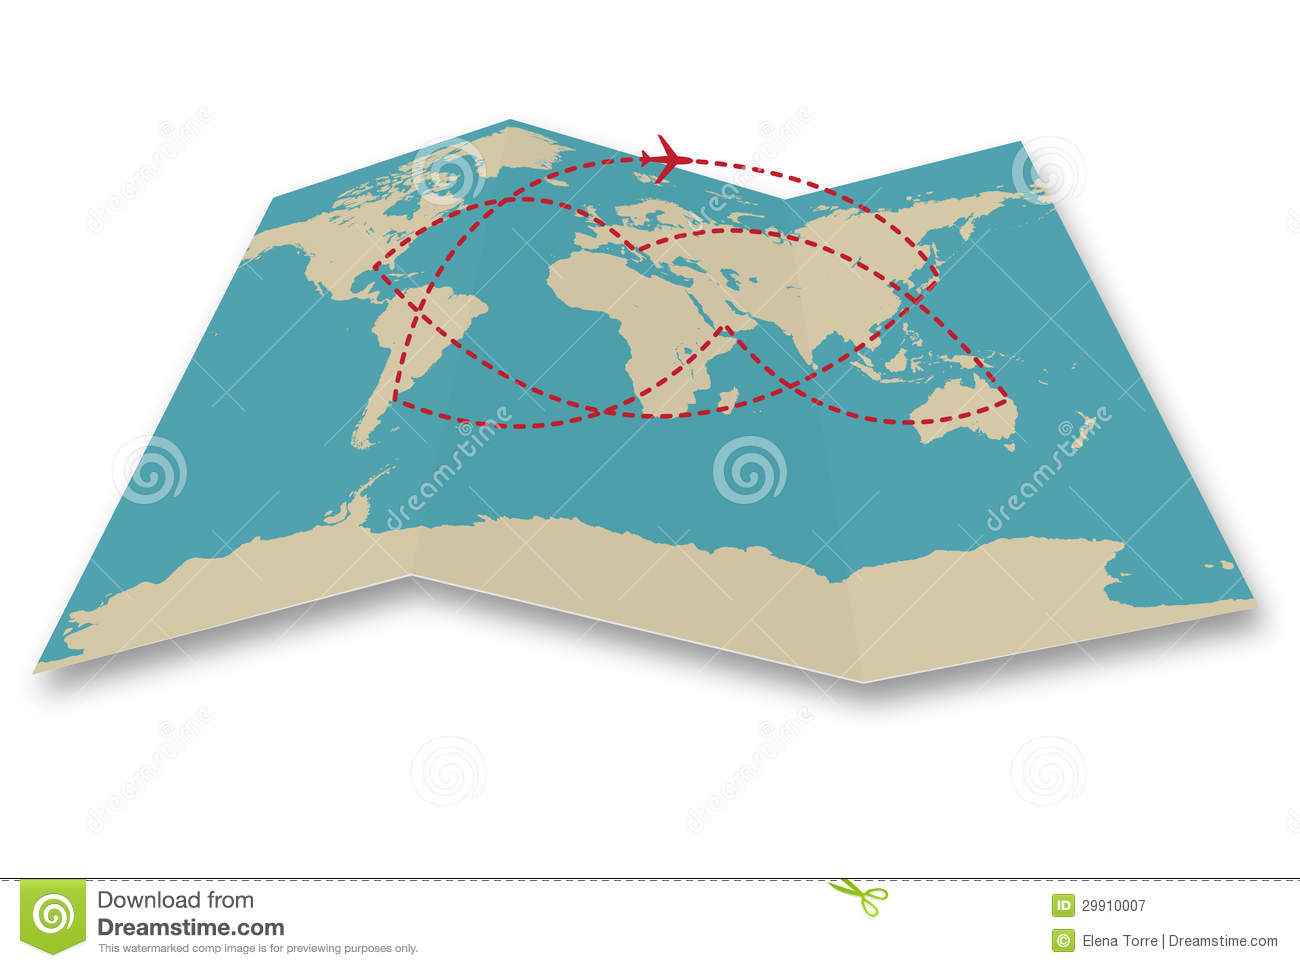 Travel world map stock vector illustration of cartography 29910007 travel world map royalty free stock photo gumiabroncs Images